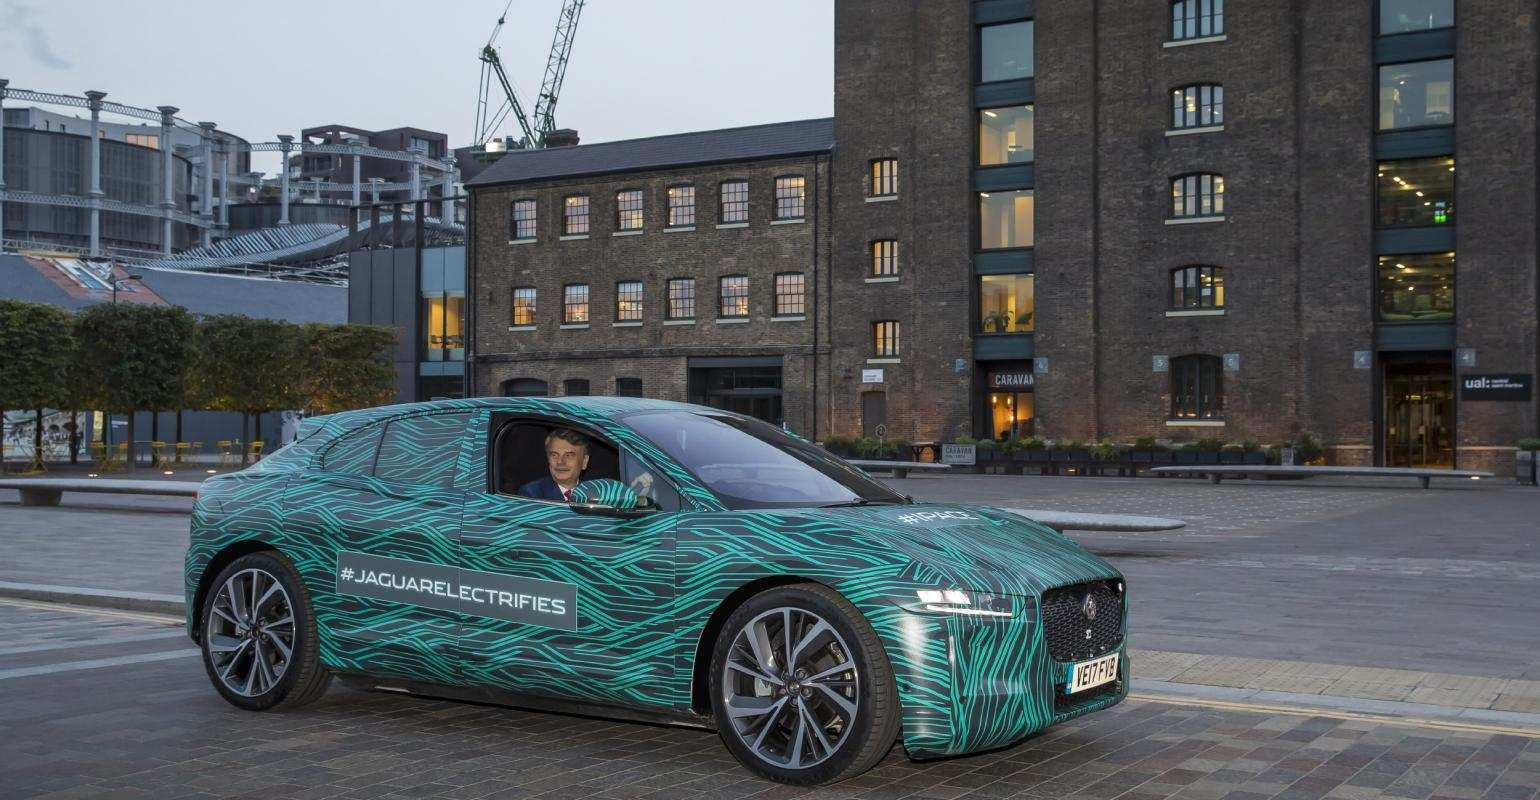 50 Concept of Land Rover Electric 2020 Images by Land Rover Electric 2020